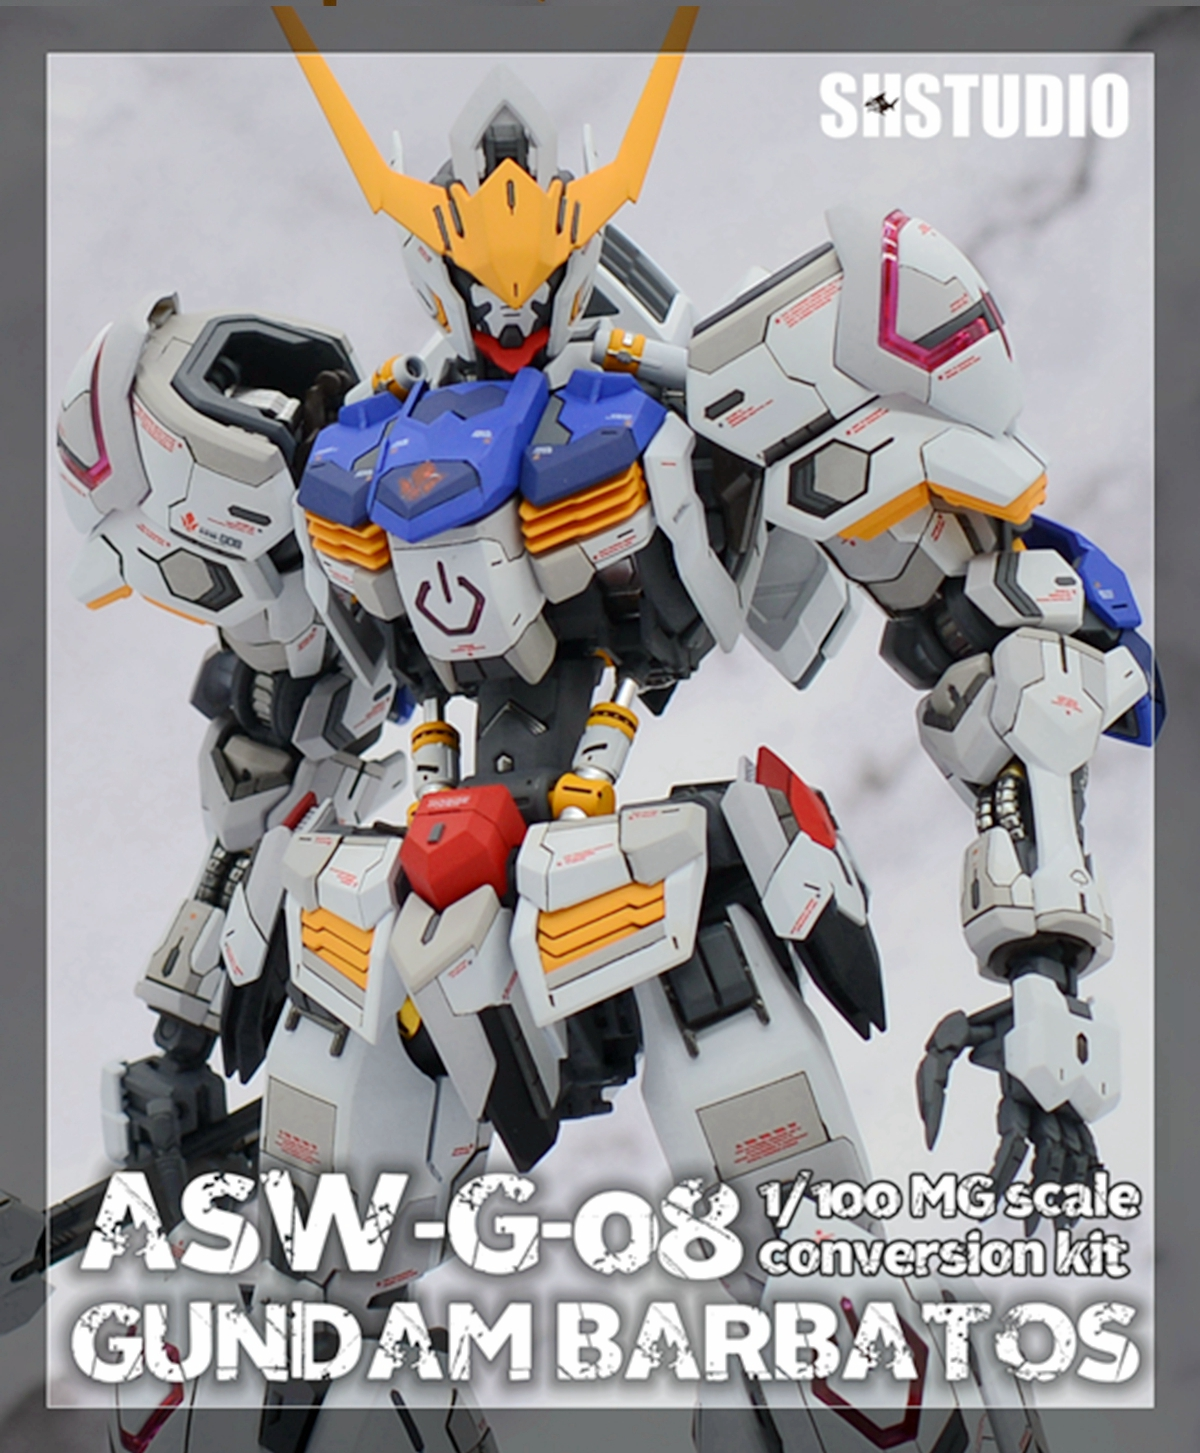 G551_barbatos_MG_SHSTUDIO_001.jpg